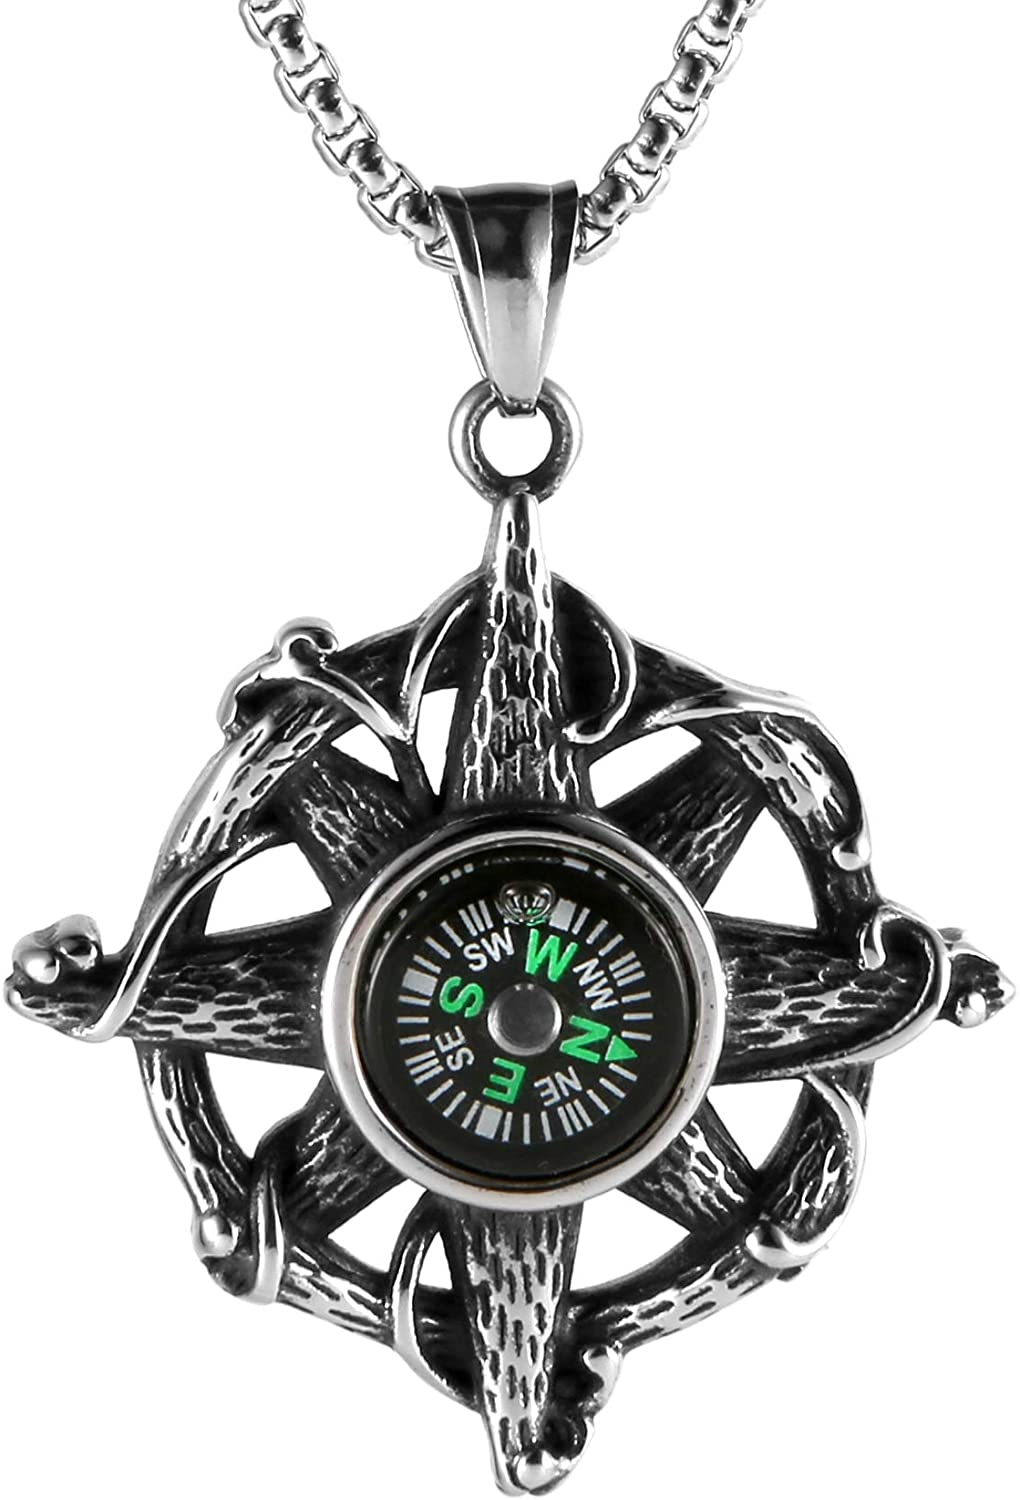 HZMAN Compass Stainless Steel Necklace Find Your Way Back Vintage Nautical Graduation Charm Pendant